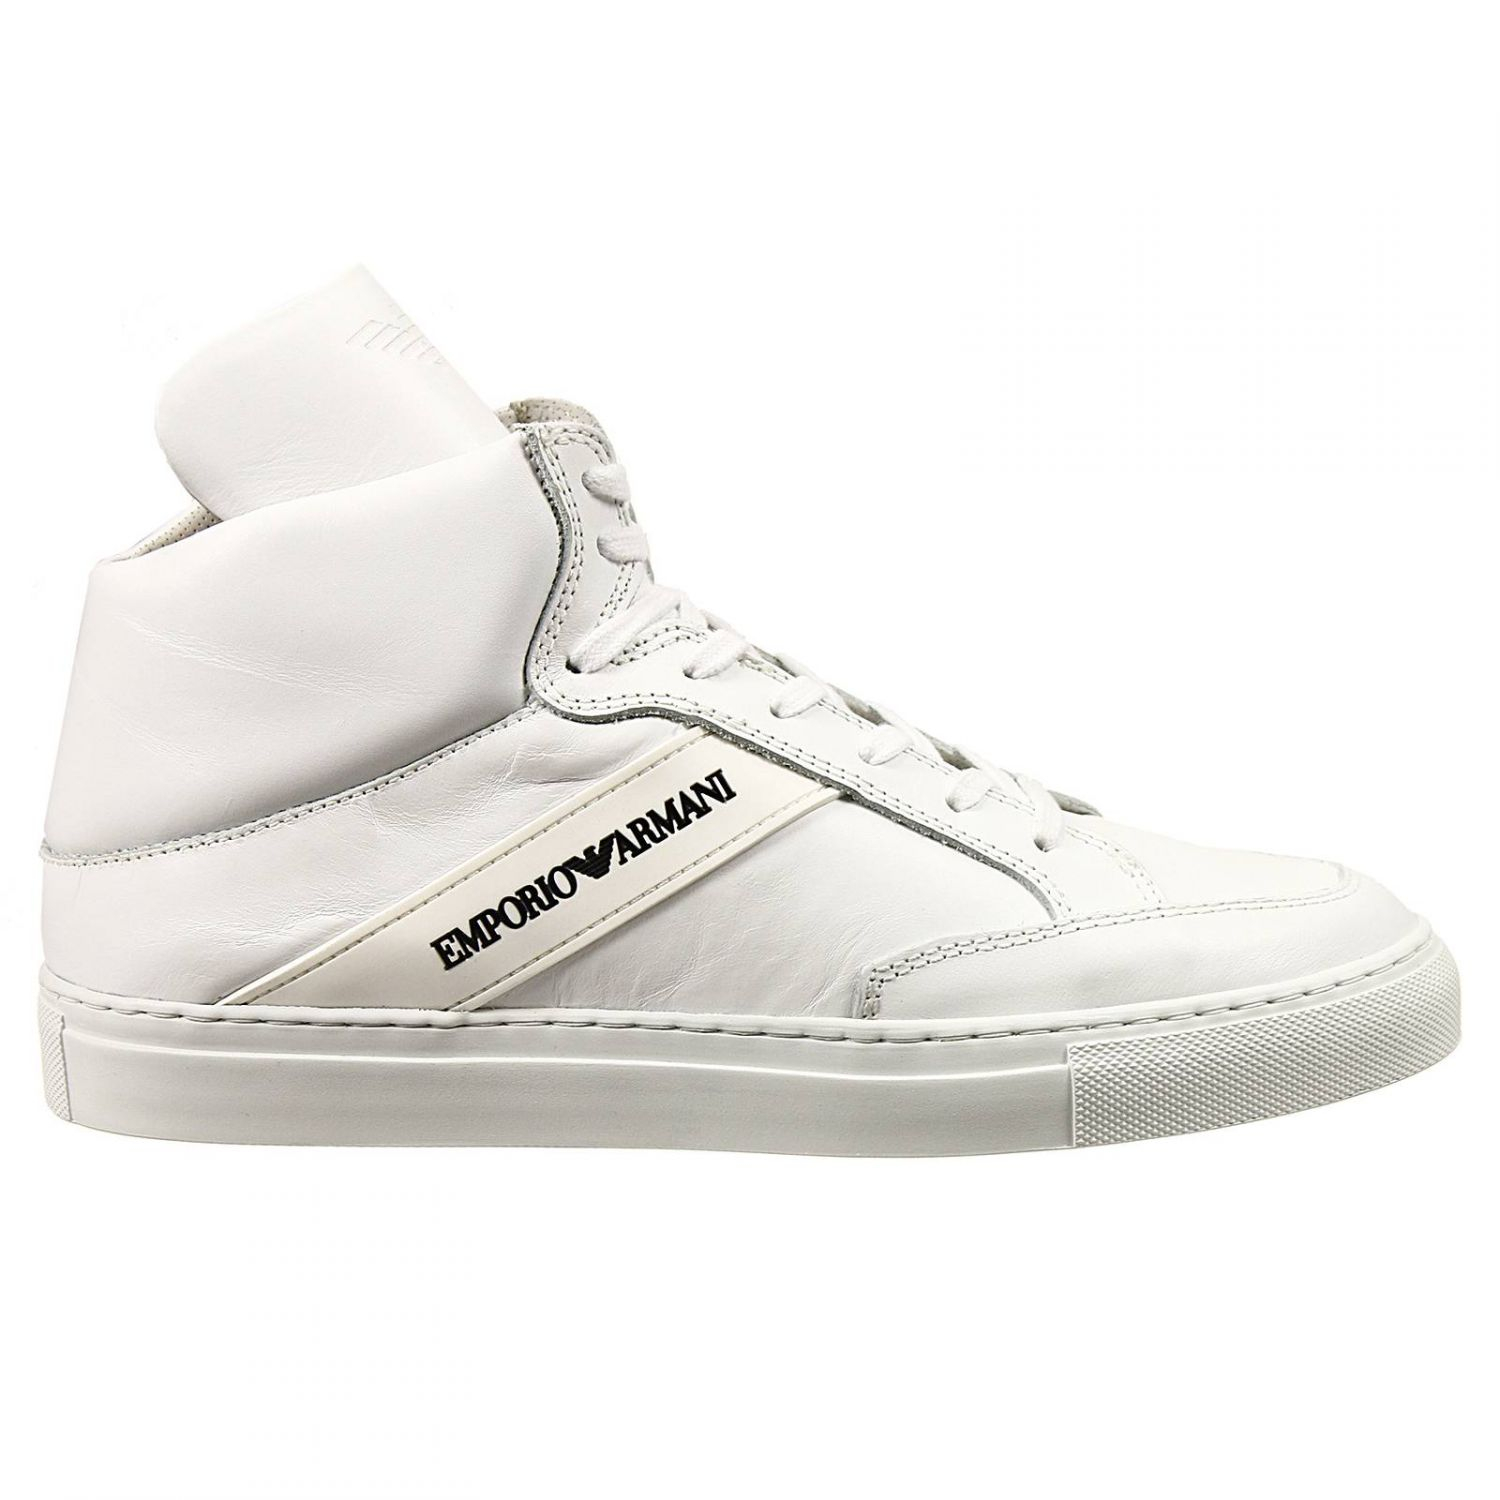 d3edc4ffe00 Lyst - Emporio Armani Sneakers Shoes Ankle Boots In Leather With ...